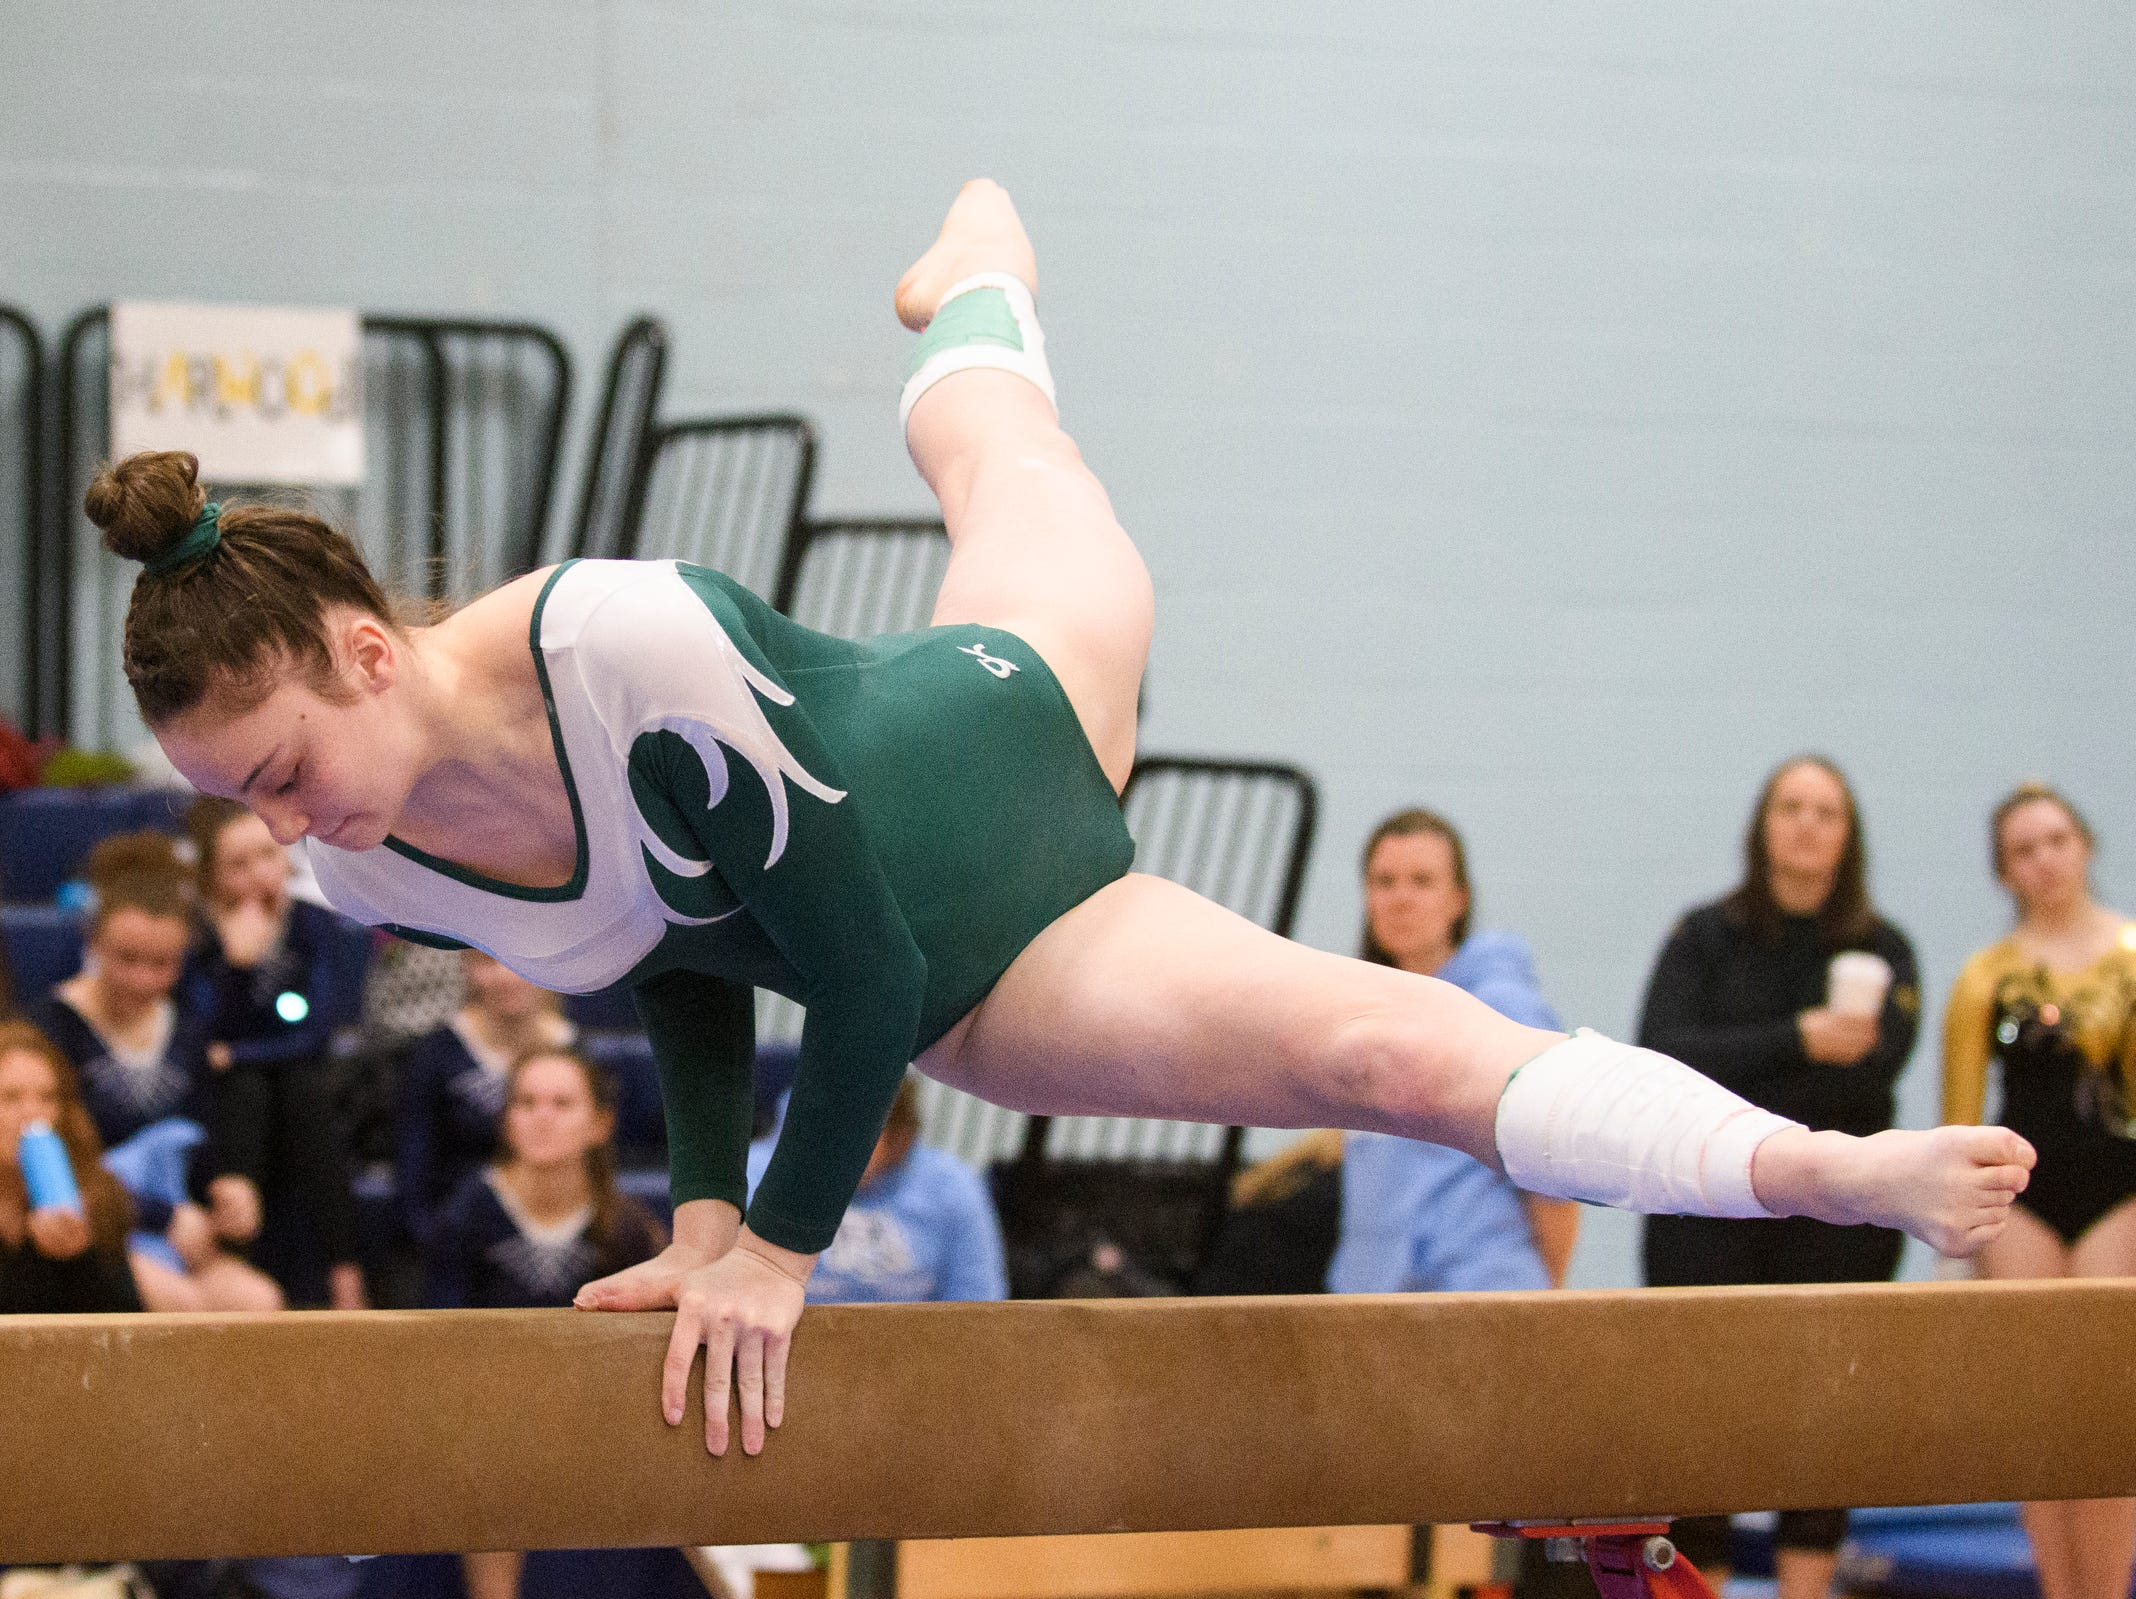 St. Johnsbury's Lizzy Jones competes in the bar during the 2019 high school gymnastics championship at Essex High School on Saturday afternoon February 16, 2019 in Essex, Vermont.